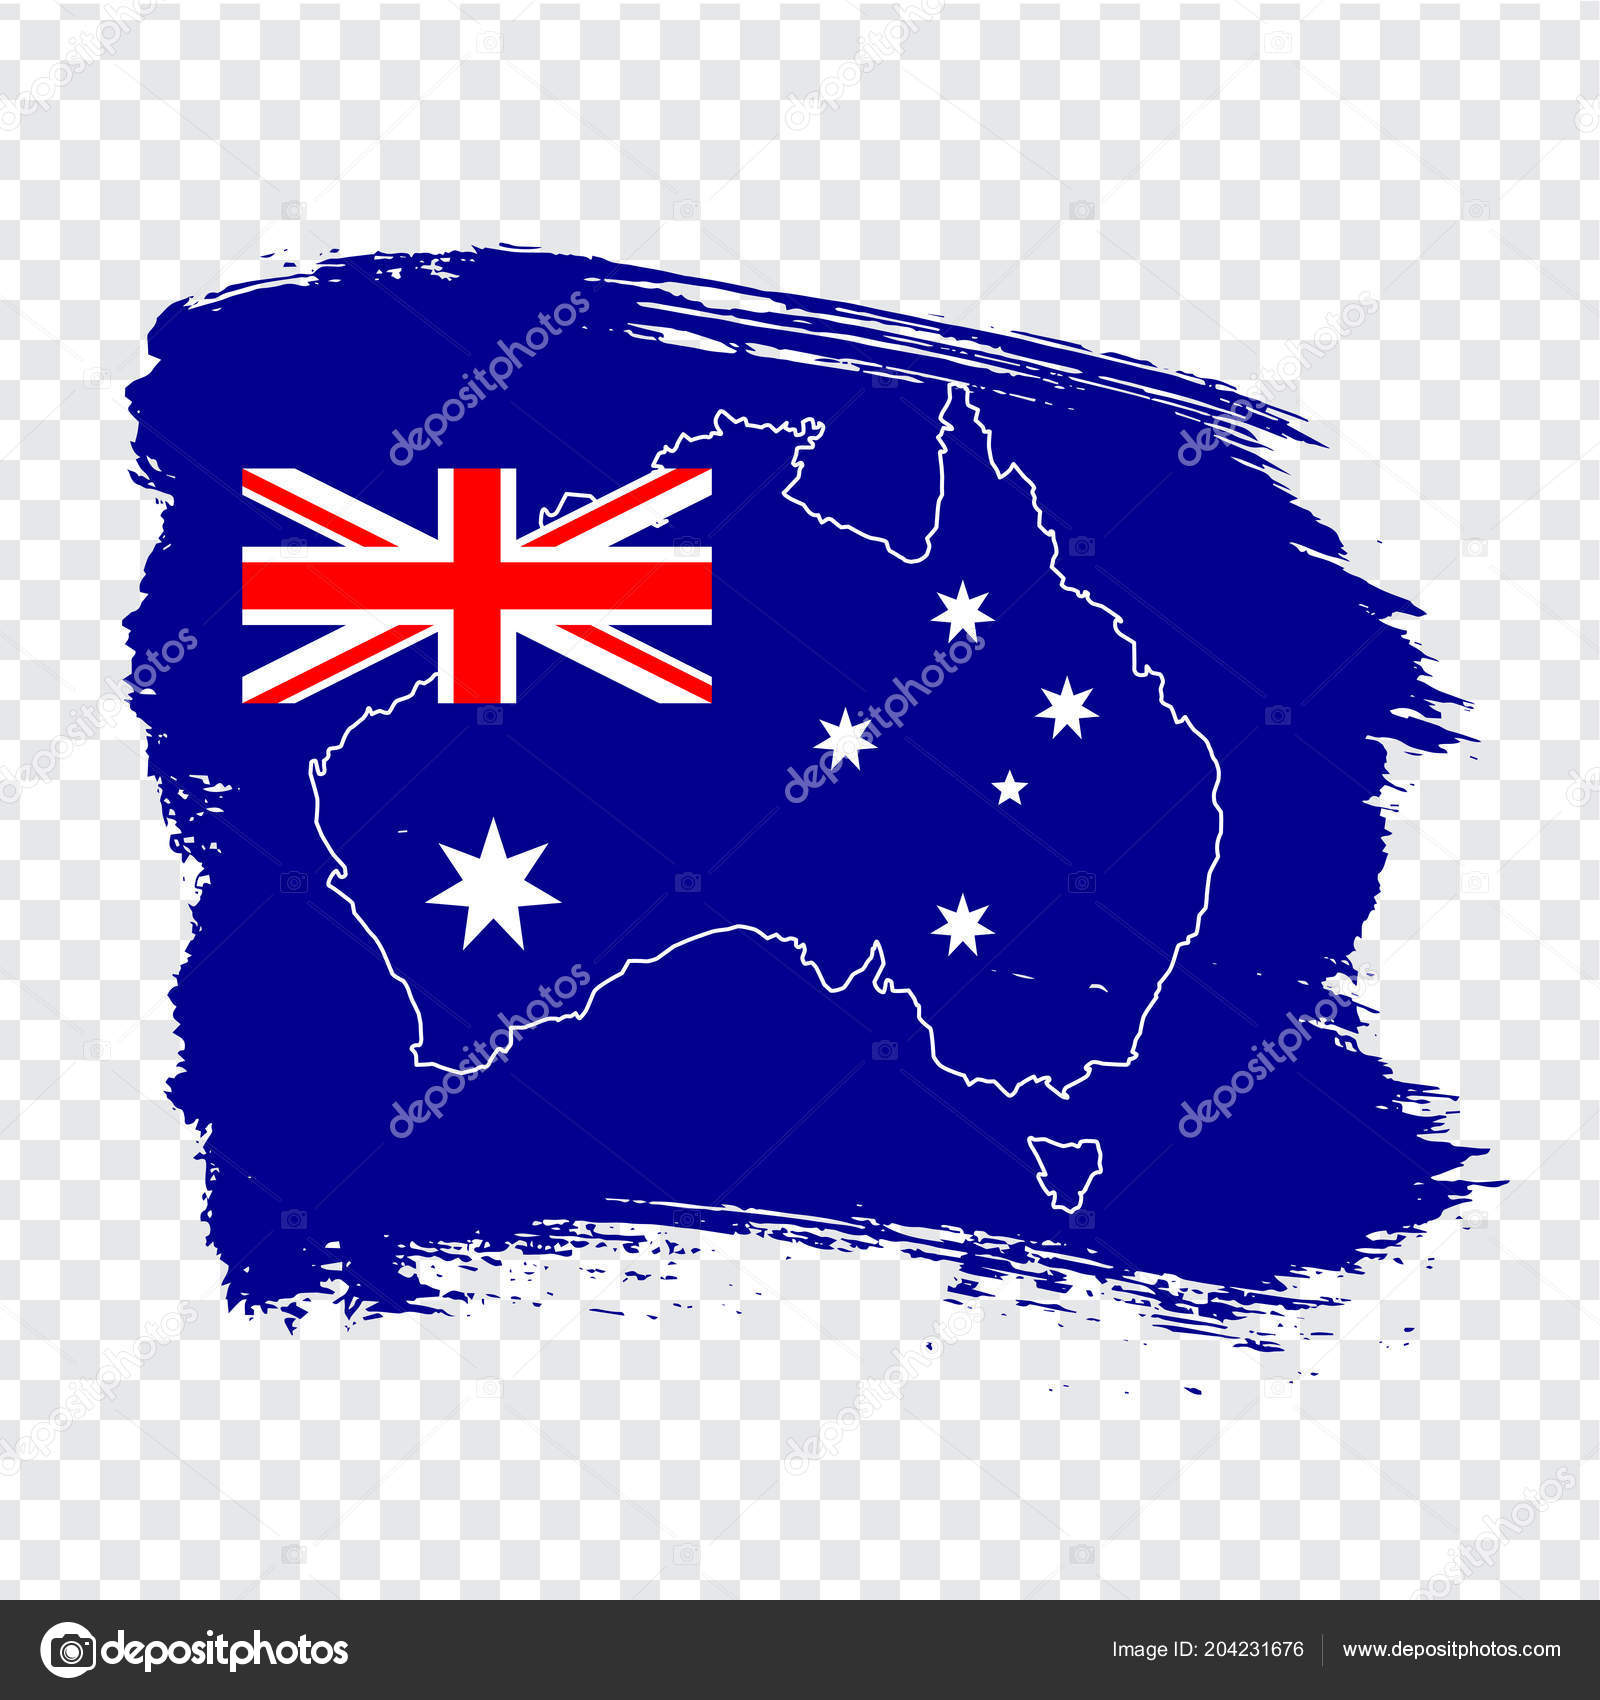 Australia Map Transparent.Flag Australia Brush Strokes Blank Map Australia High Quality Map